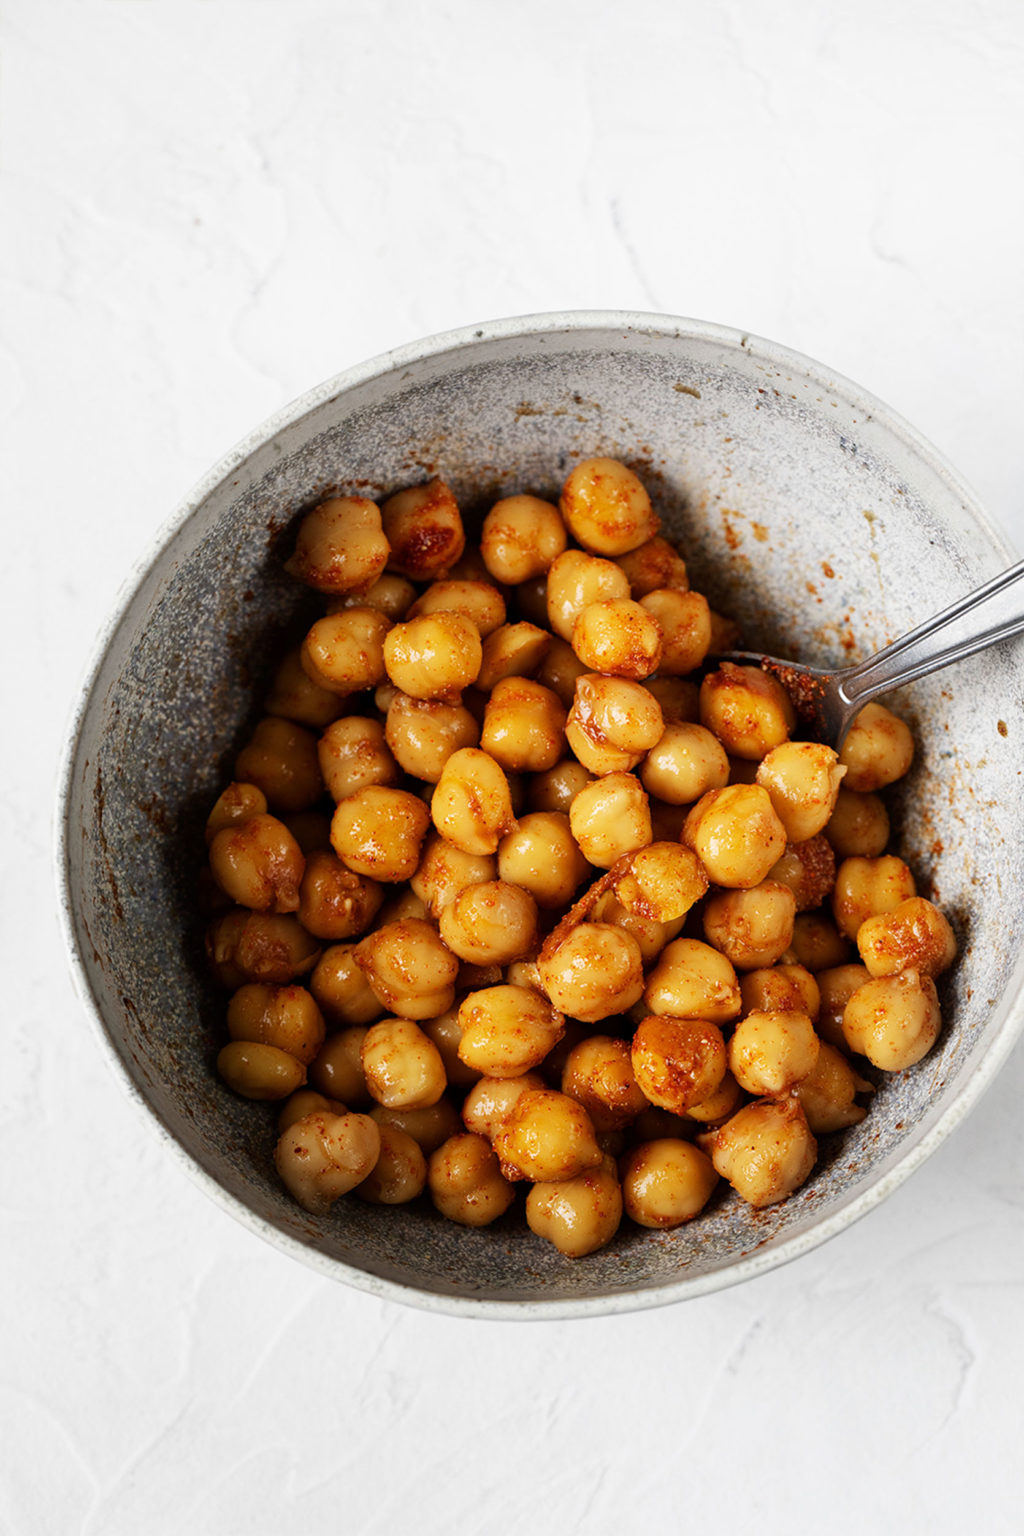 A small, white and gray ceramic bowl holds chickpeas that are being tossed with olive oil and spices.